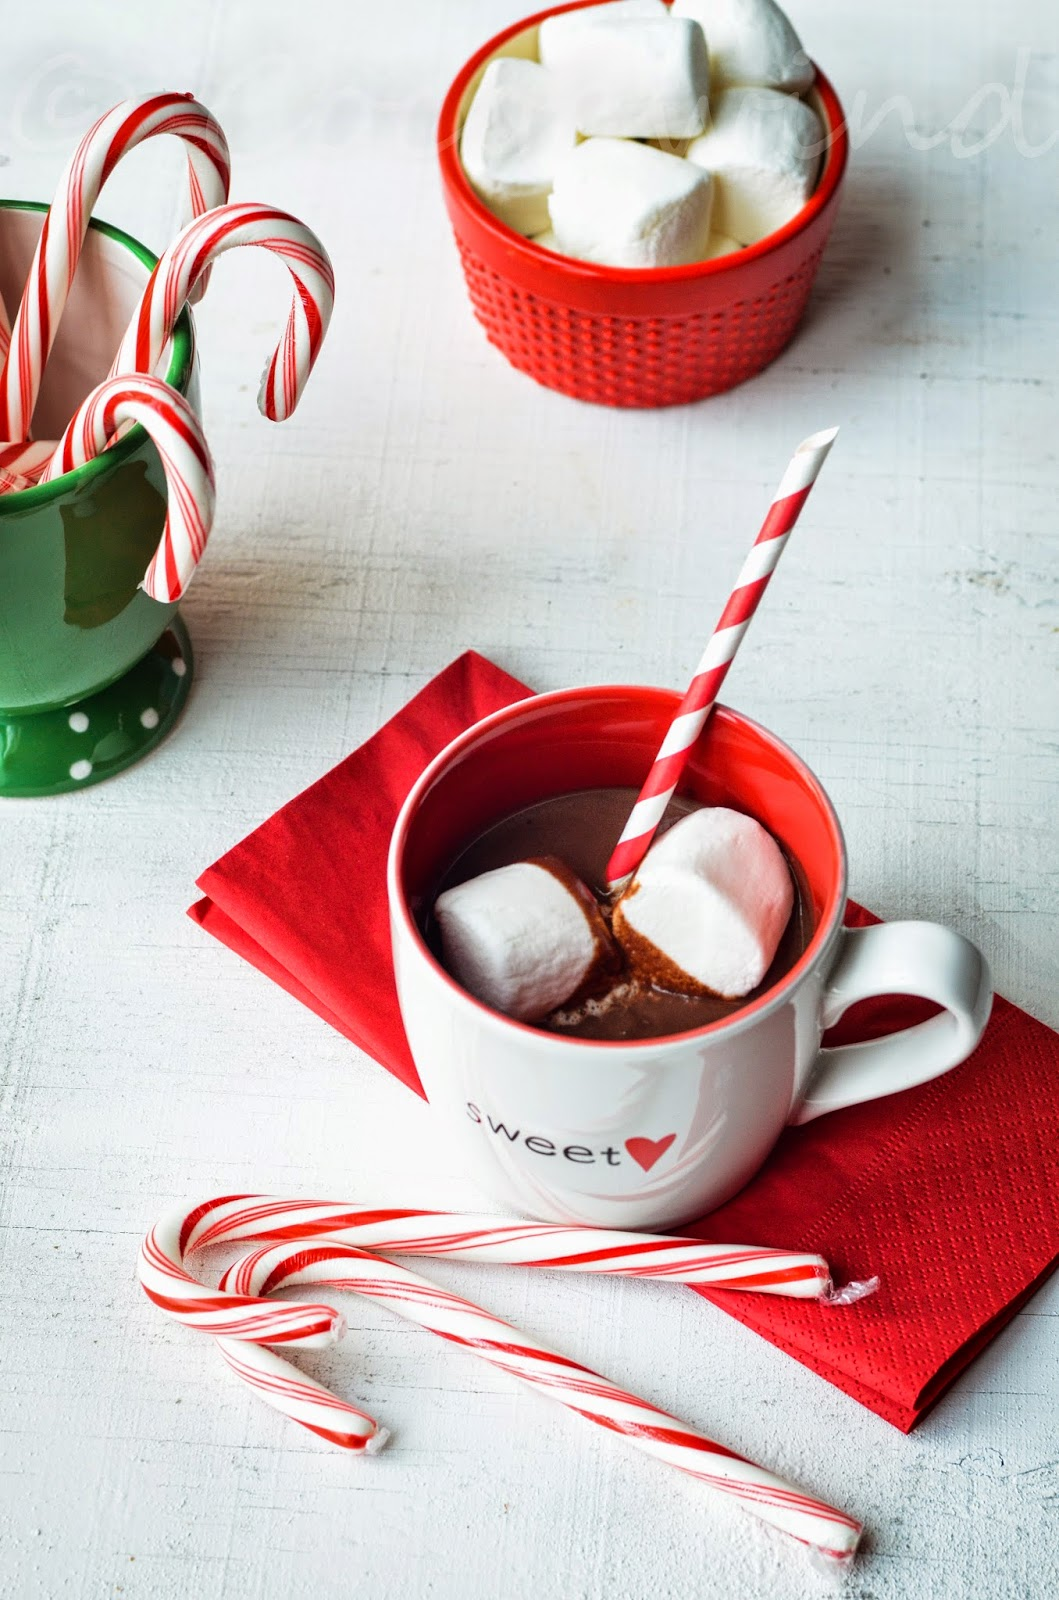 Hot Chocolate for my Sweetheart!